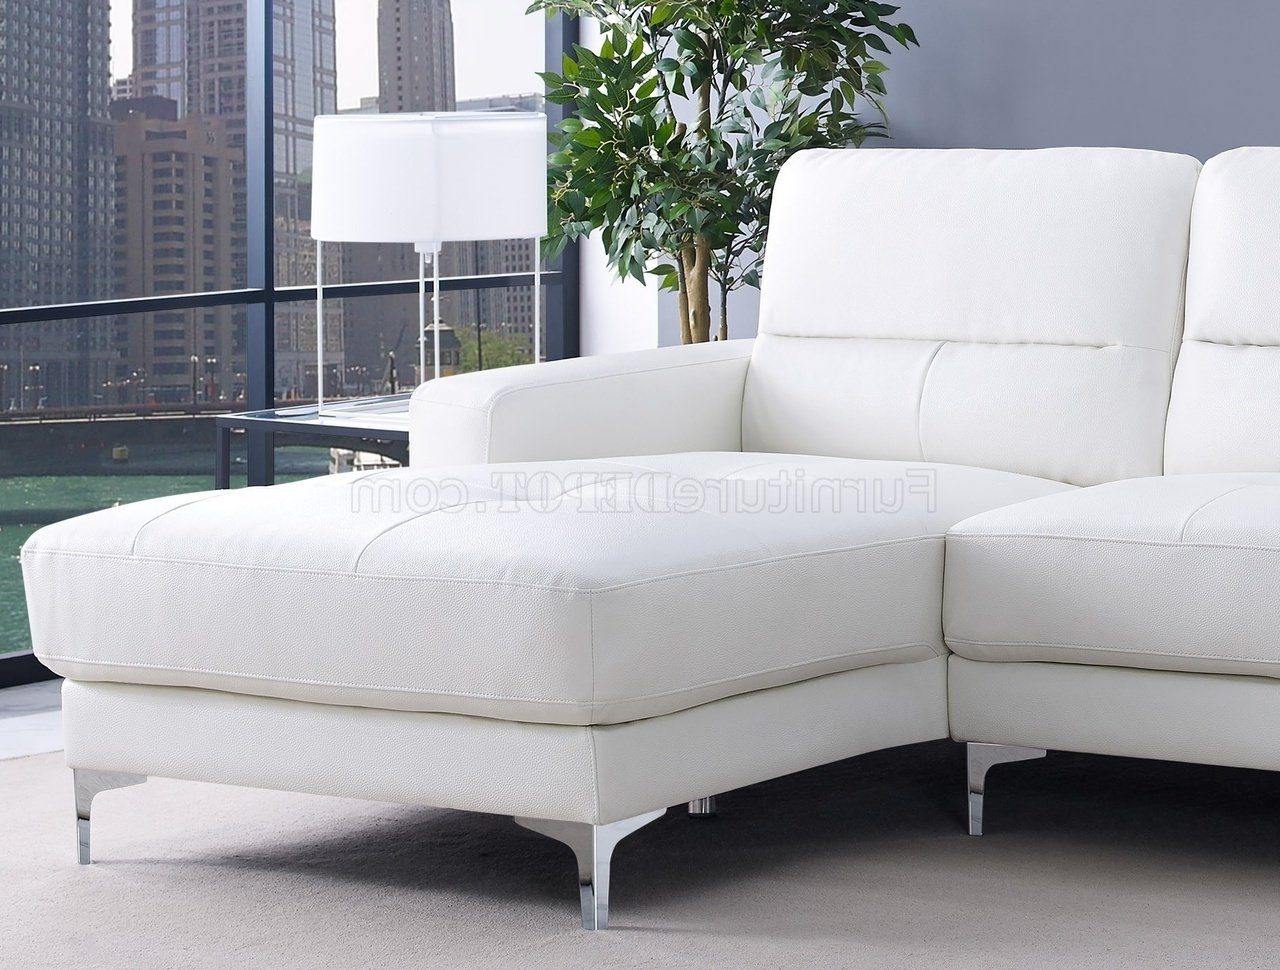 Latest Memphis Sectional Sofas With Regard To Sectional Sofa In White Bonded Leatherwhiteline (View 4 of 20)